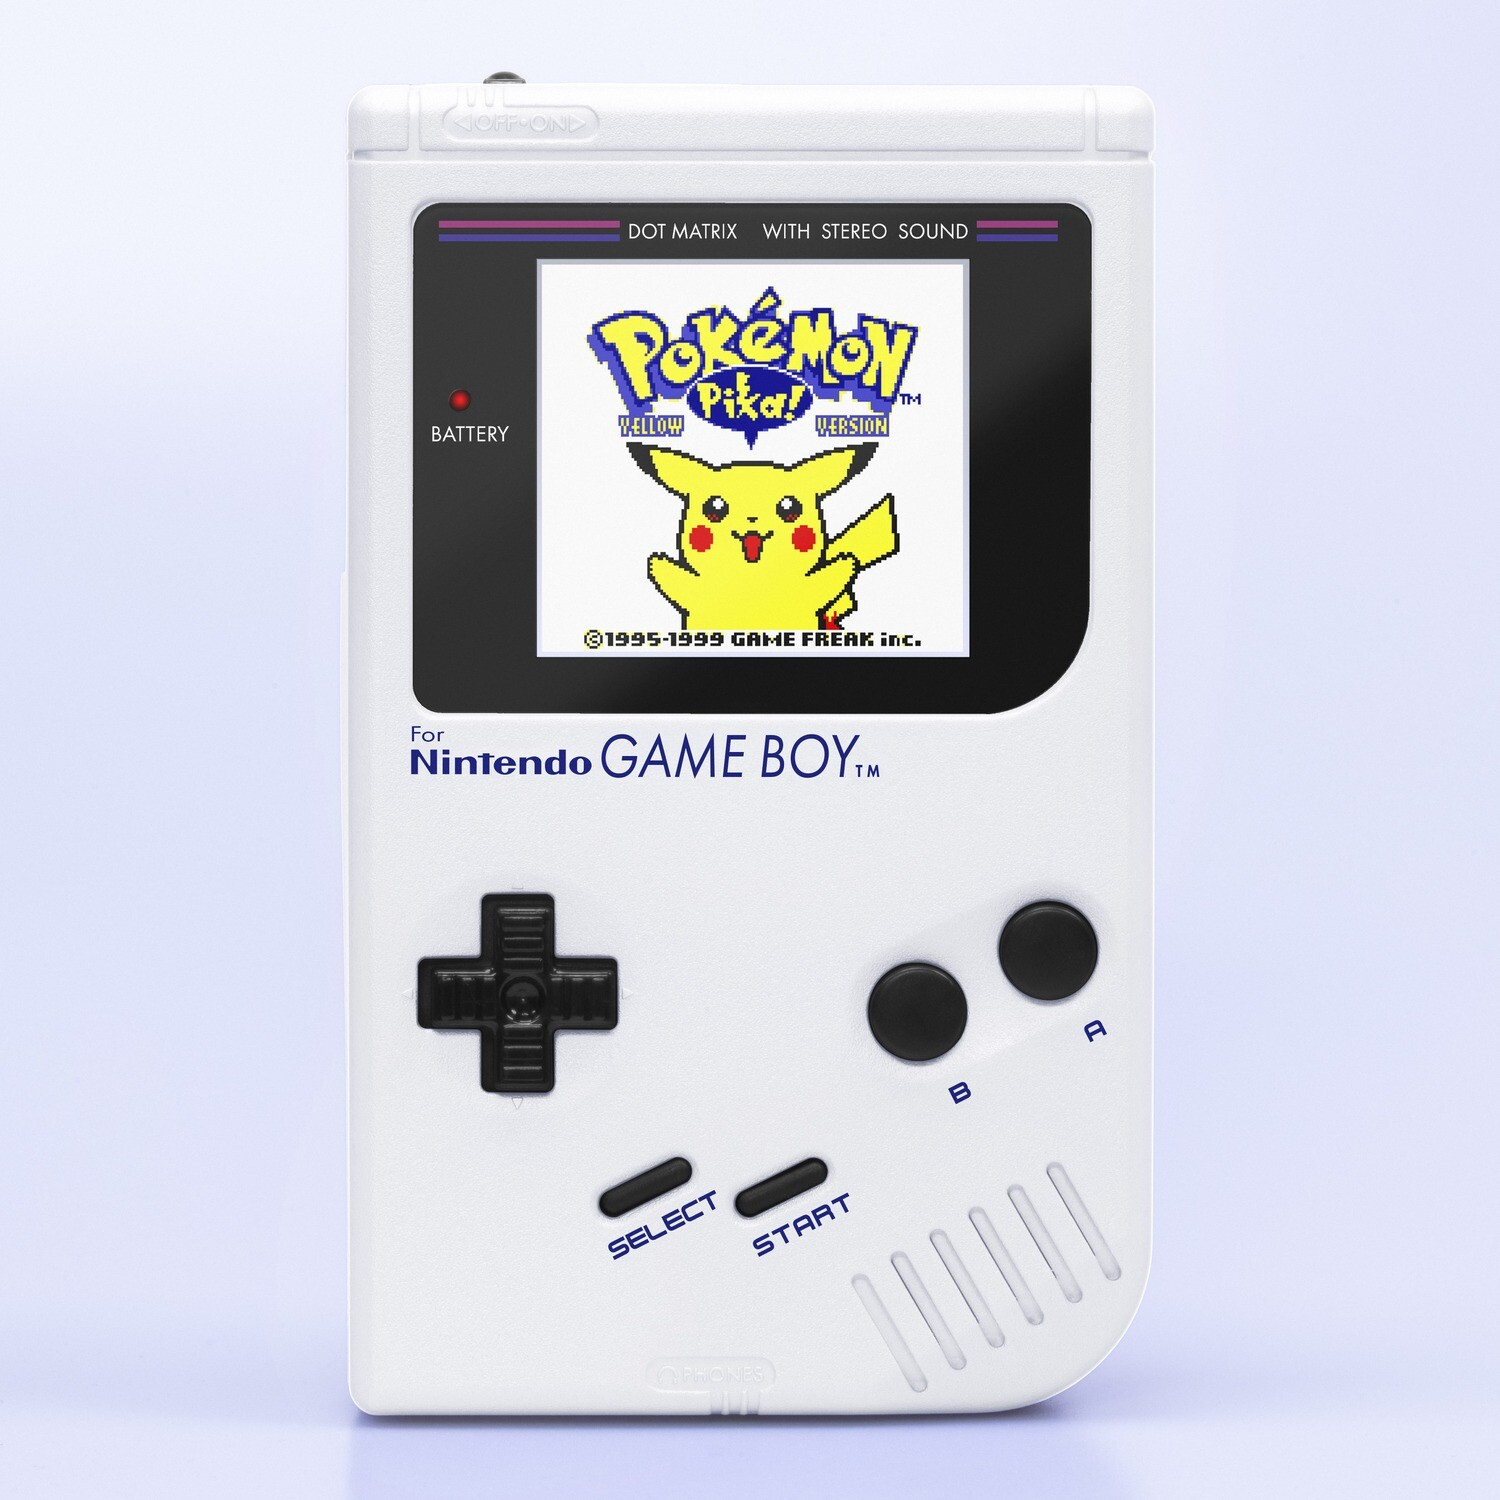 Game Boy Original: Prestige Edition (Pearl White)